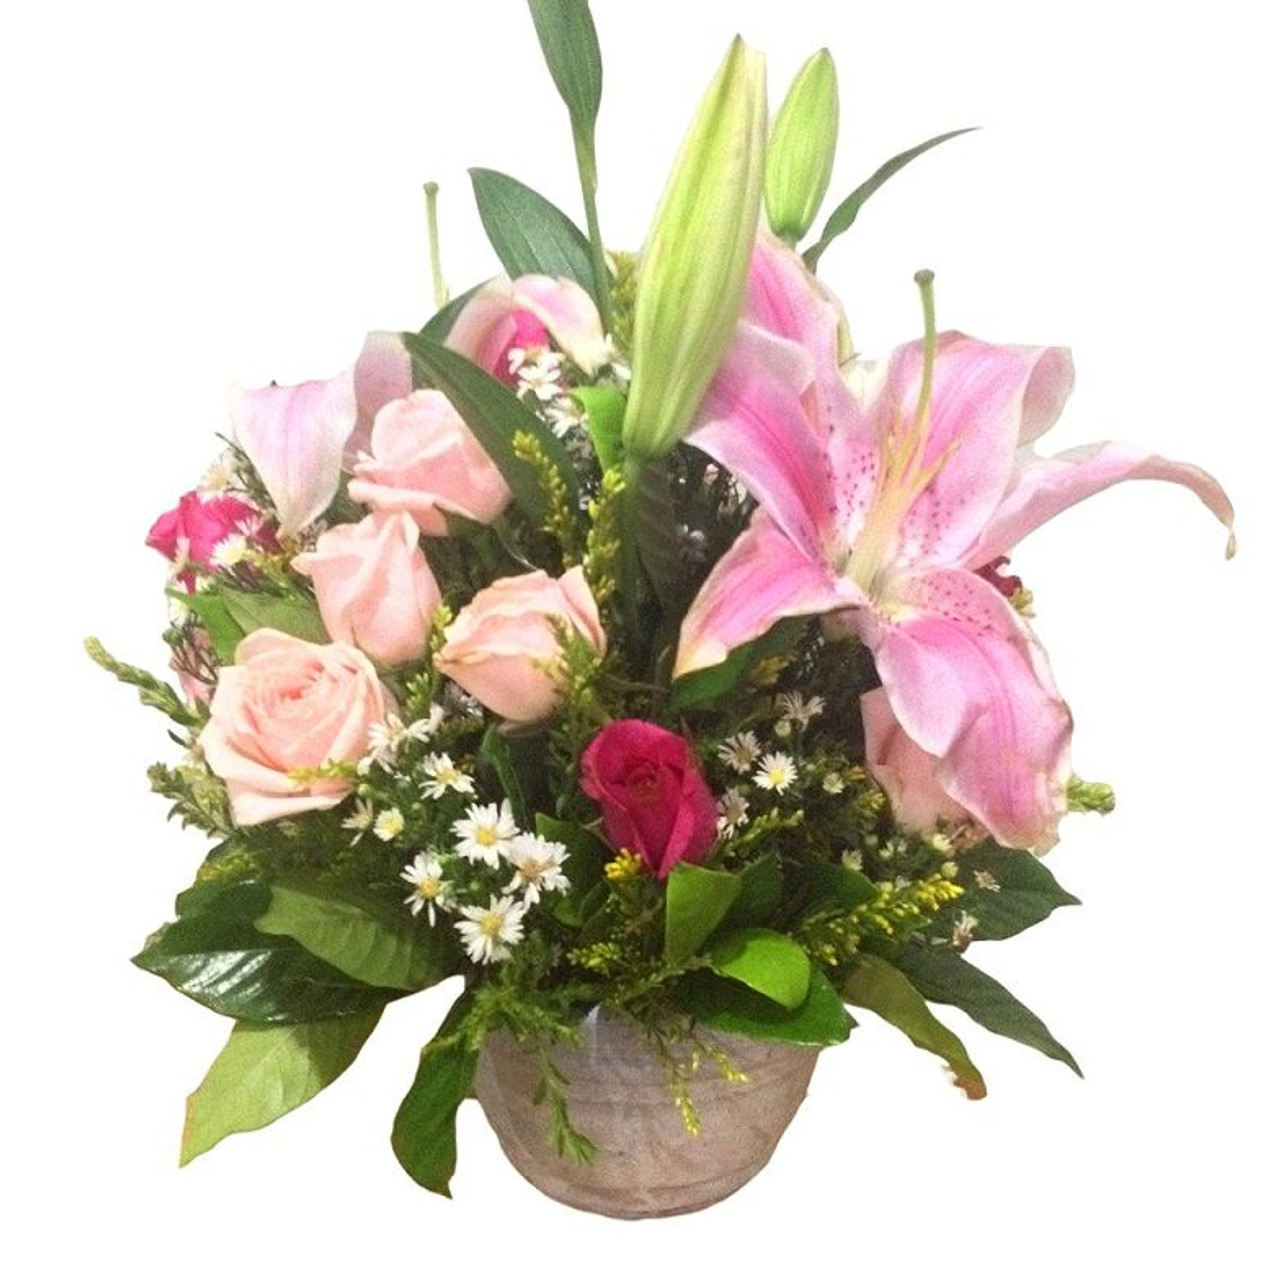 12 Roses with Stargazer and Peruvian lilies a Terra Cotta vase